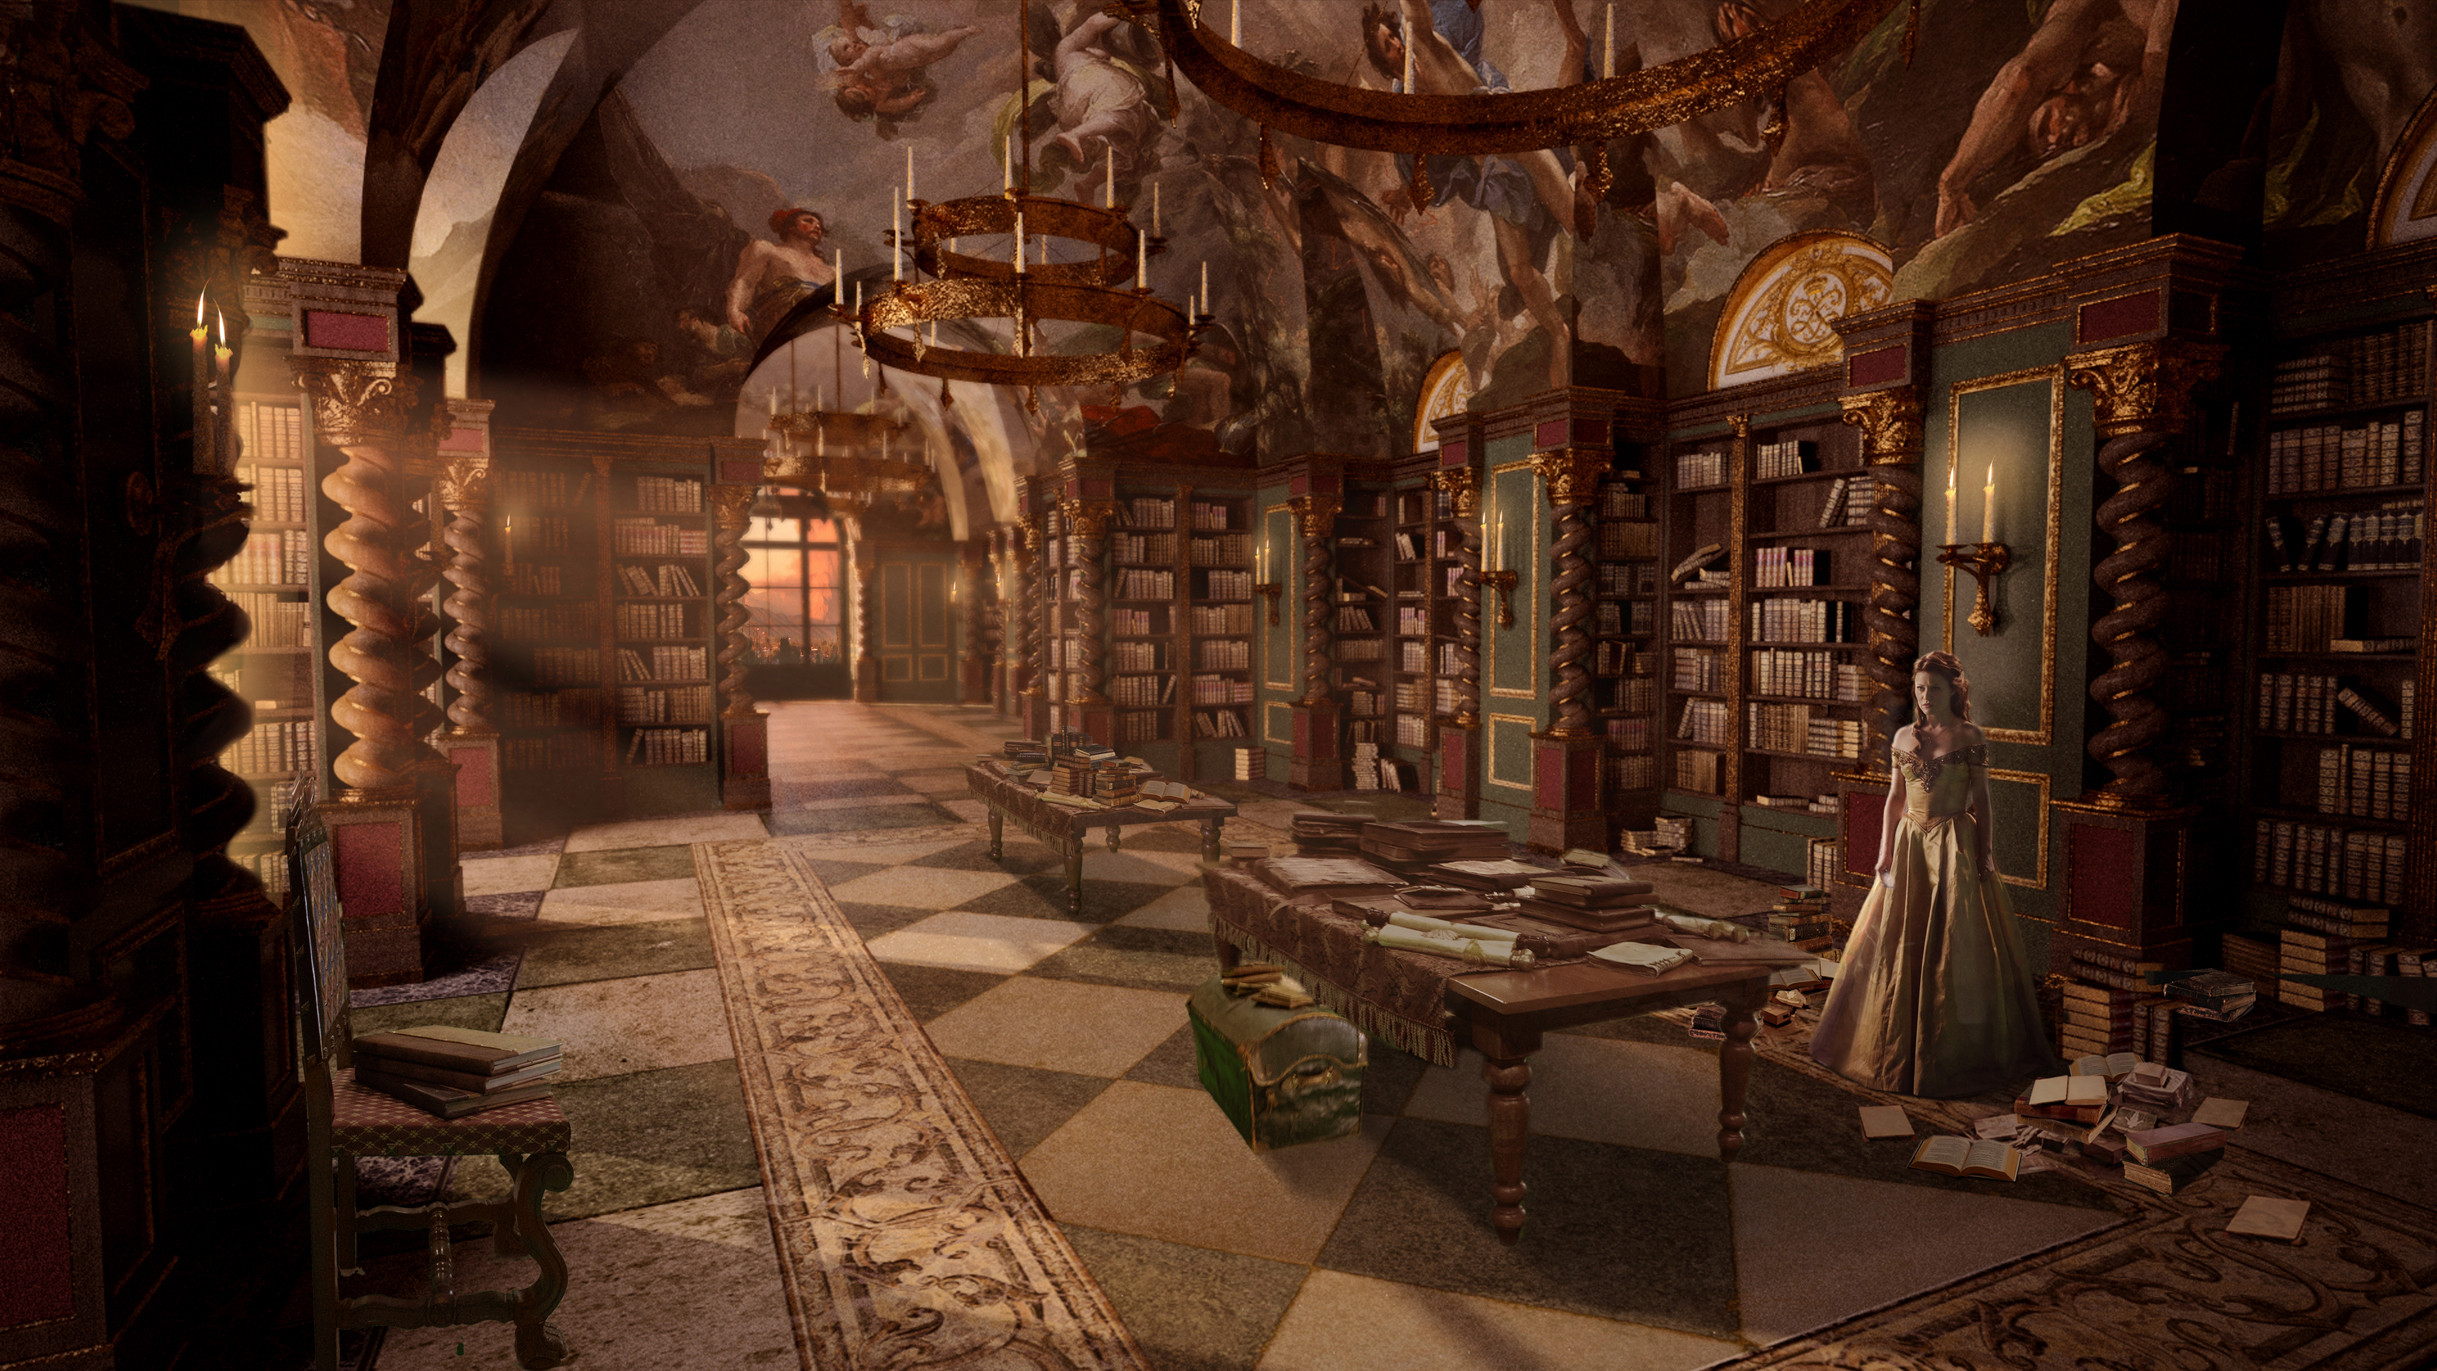 I worked over top of Doug MaClean's 3D to add furniture and lighting to Rumple's Salon